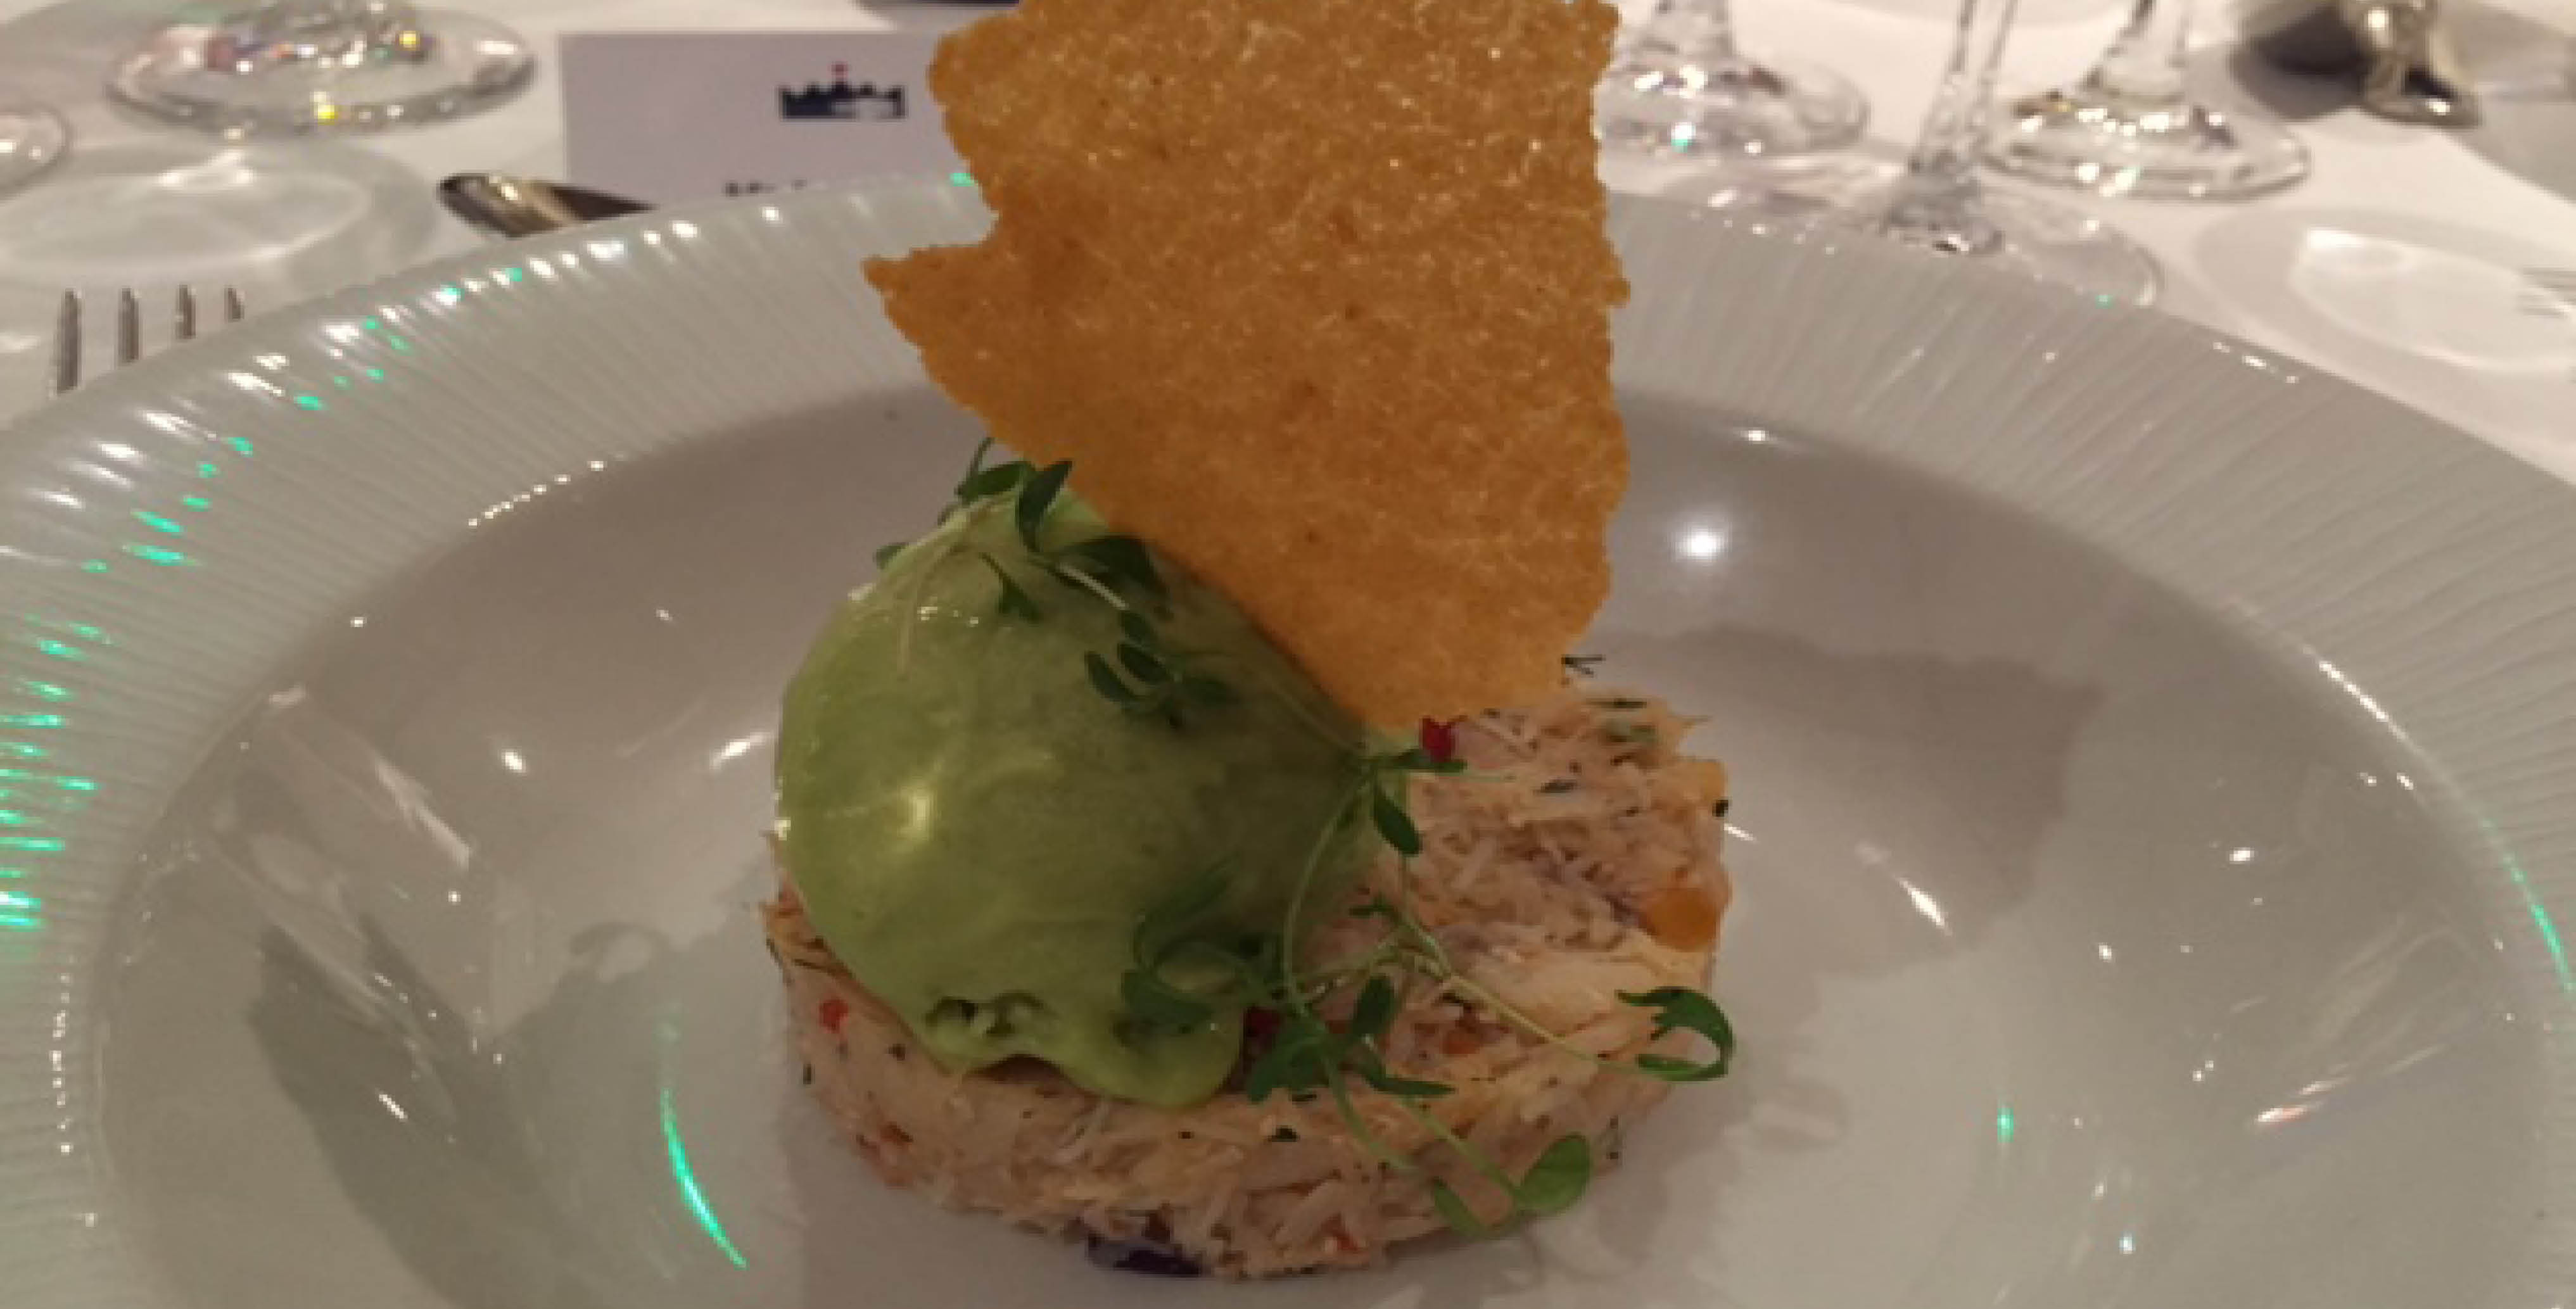 Crab Salad with avocado ice cream